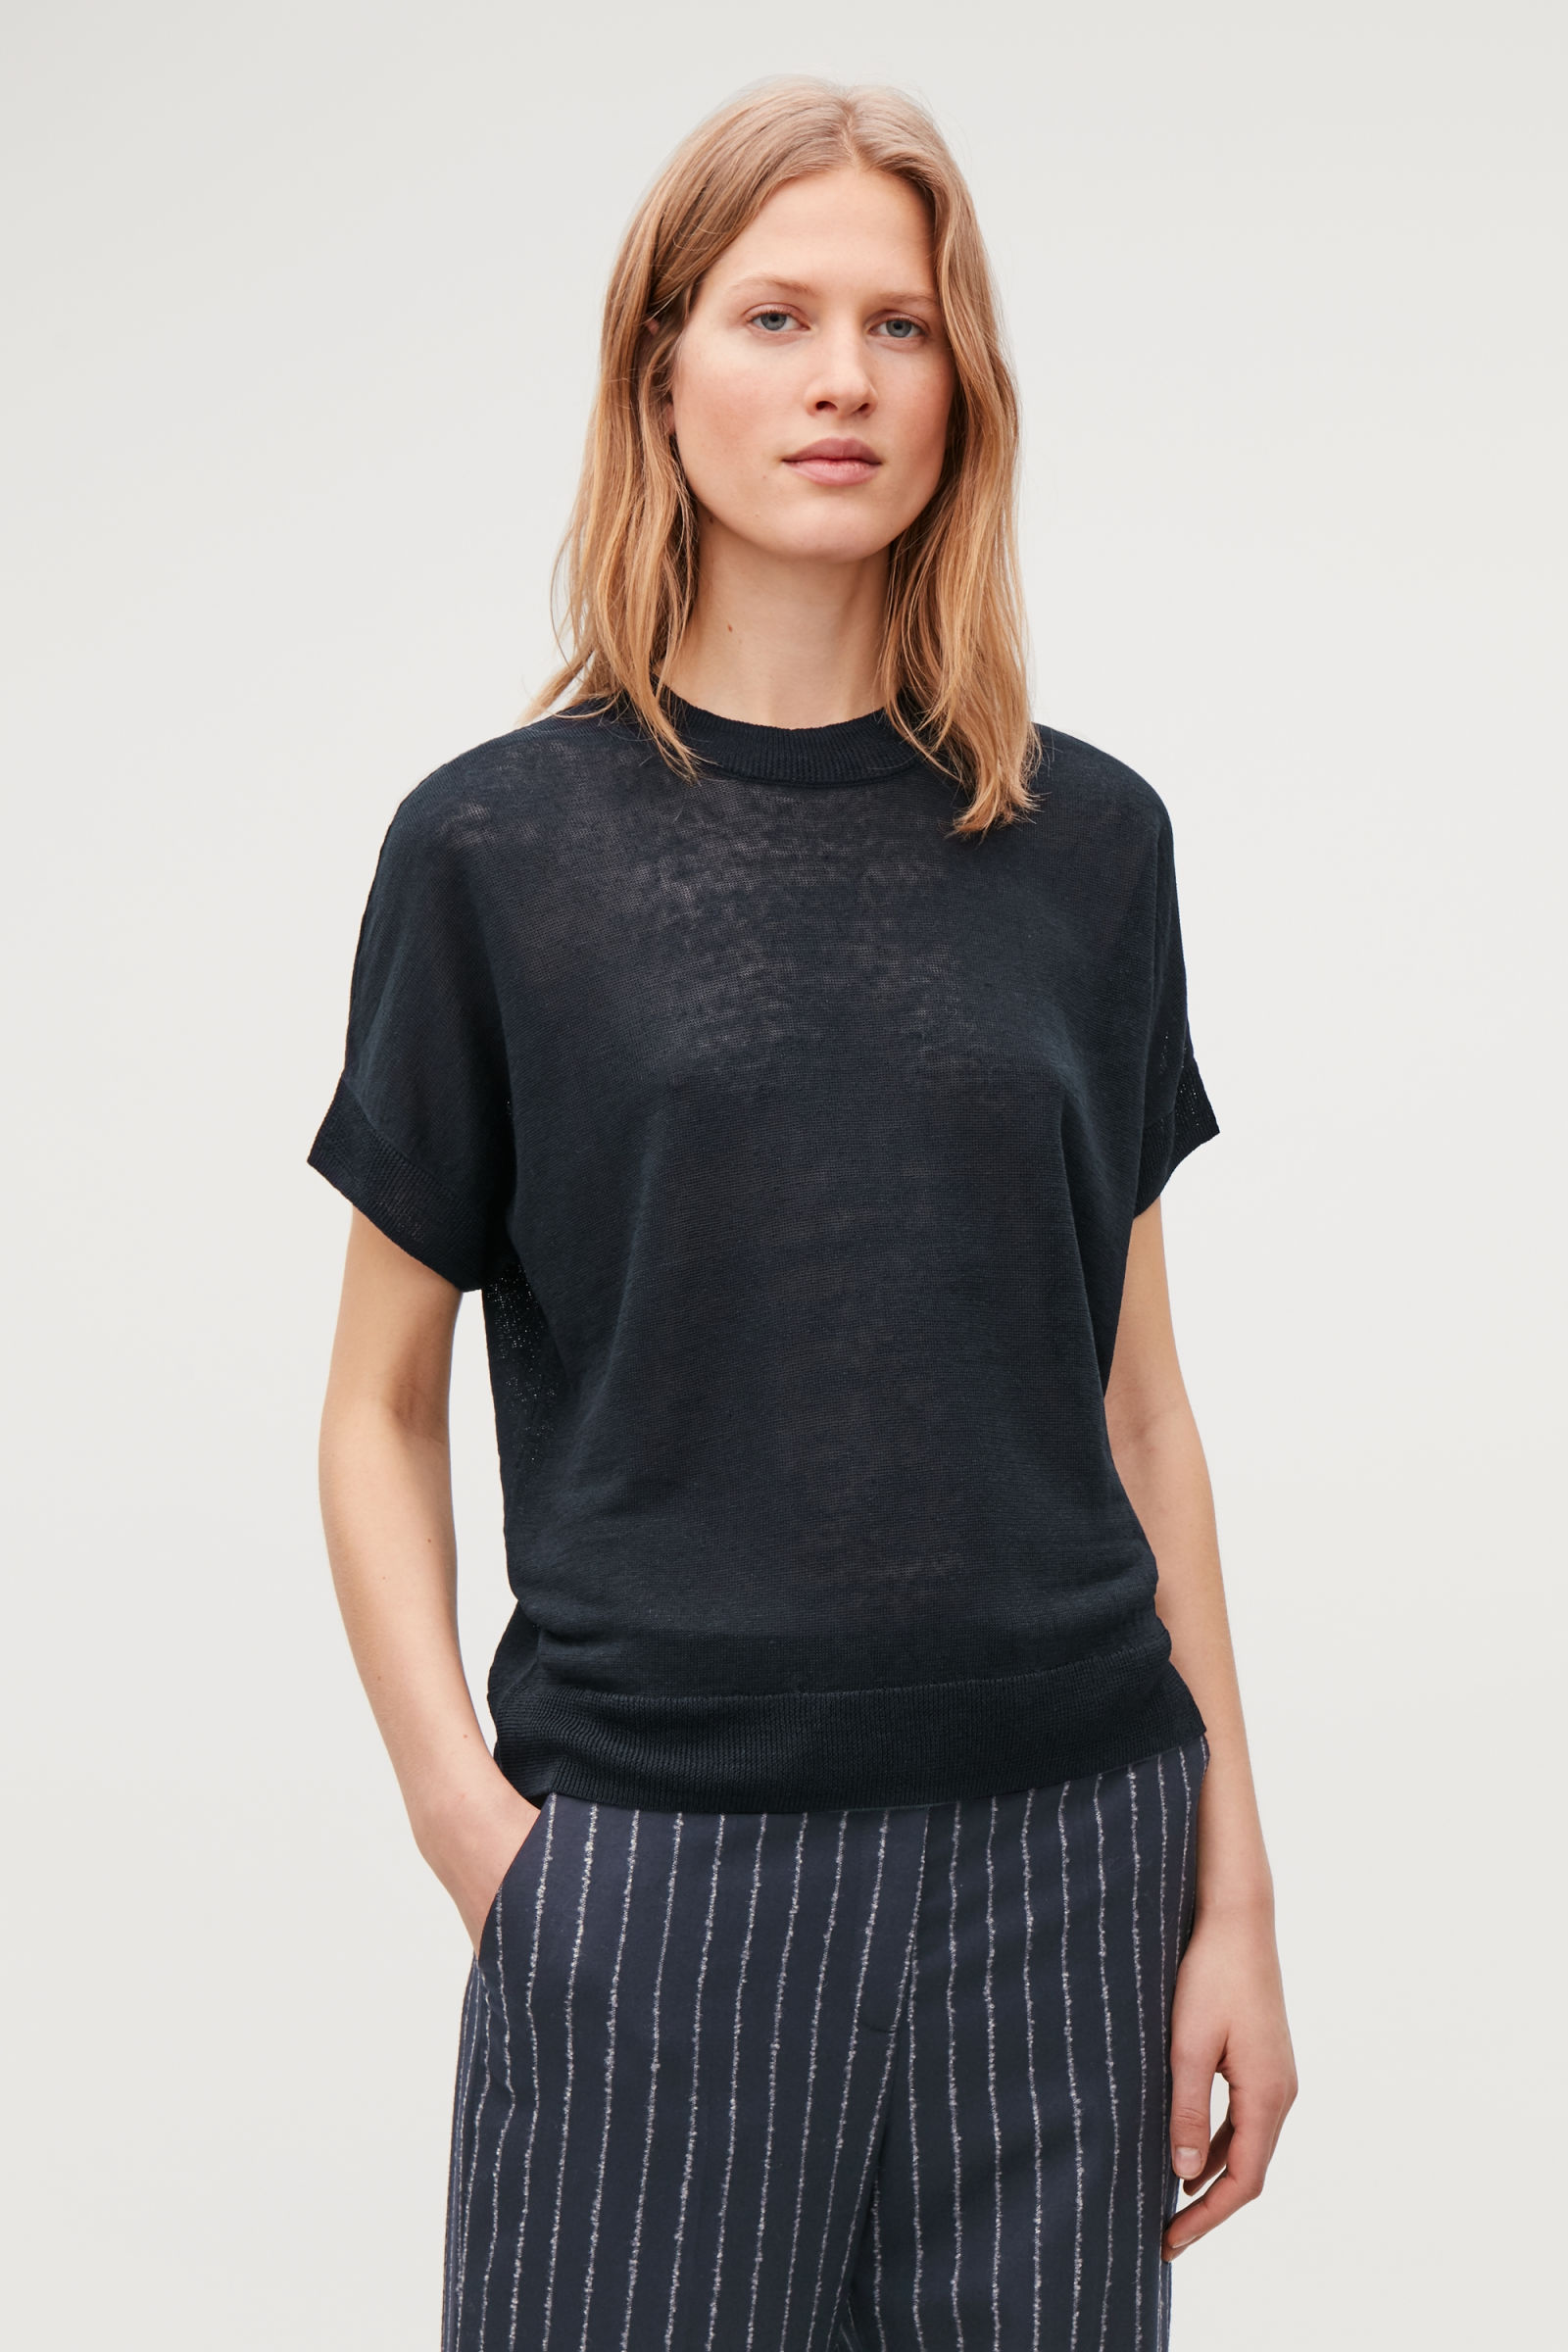 Cos Shaped Linen-Silk knit top £55